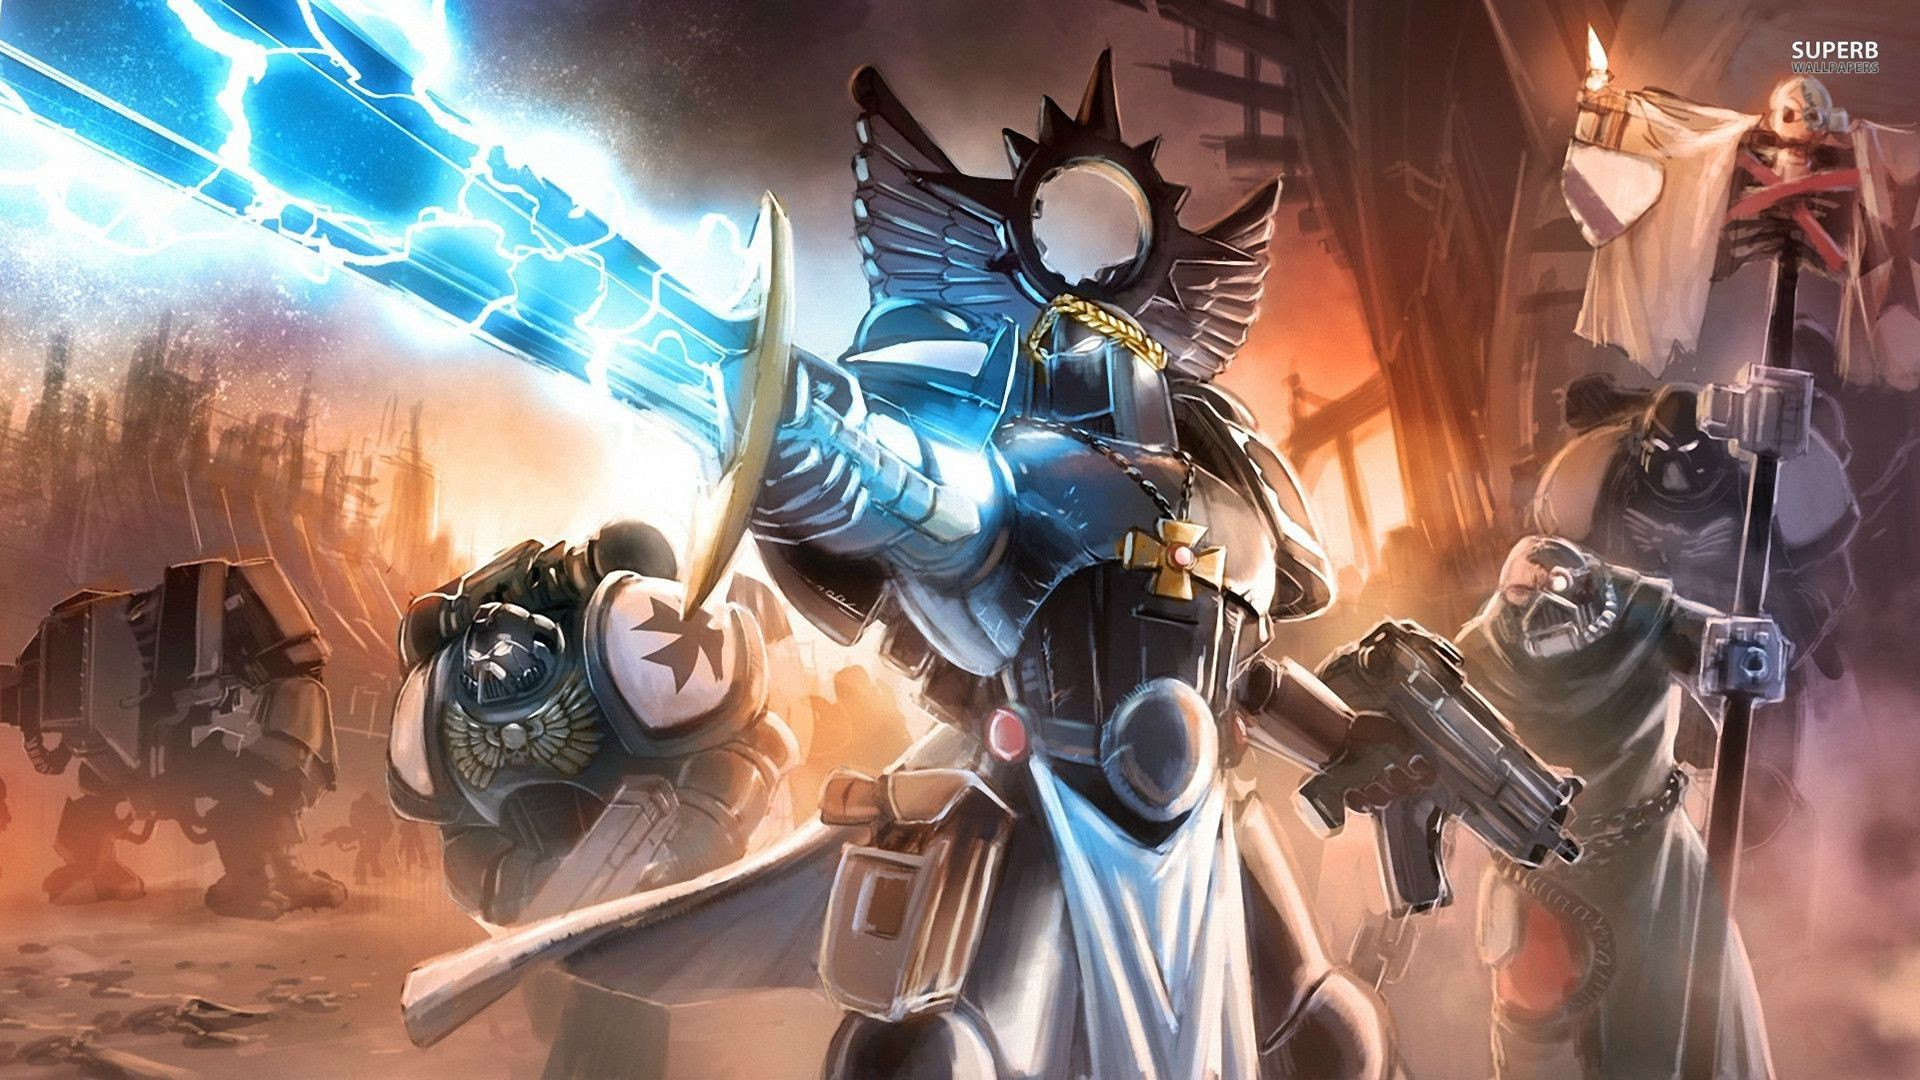 Warhammer 40K HD Wallpapers and Backgrounds   Free Wallpapers   Pinterest    Wallpaper